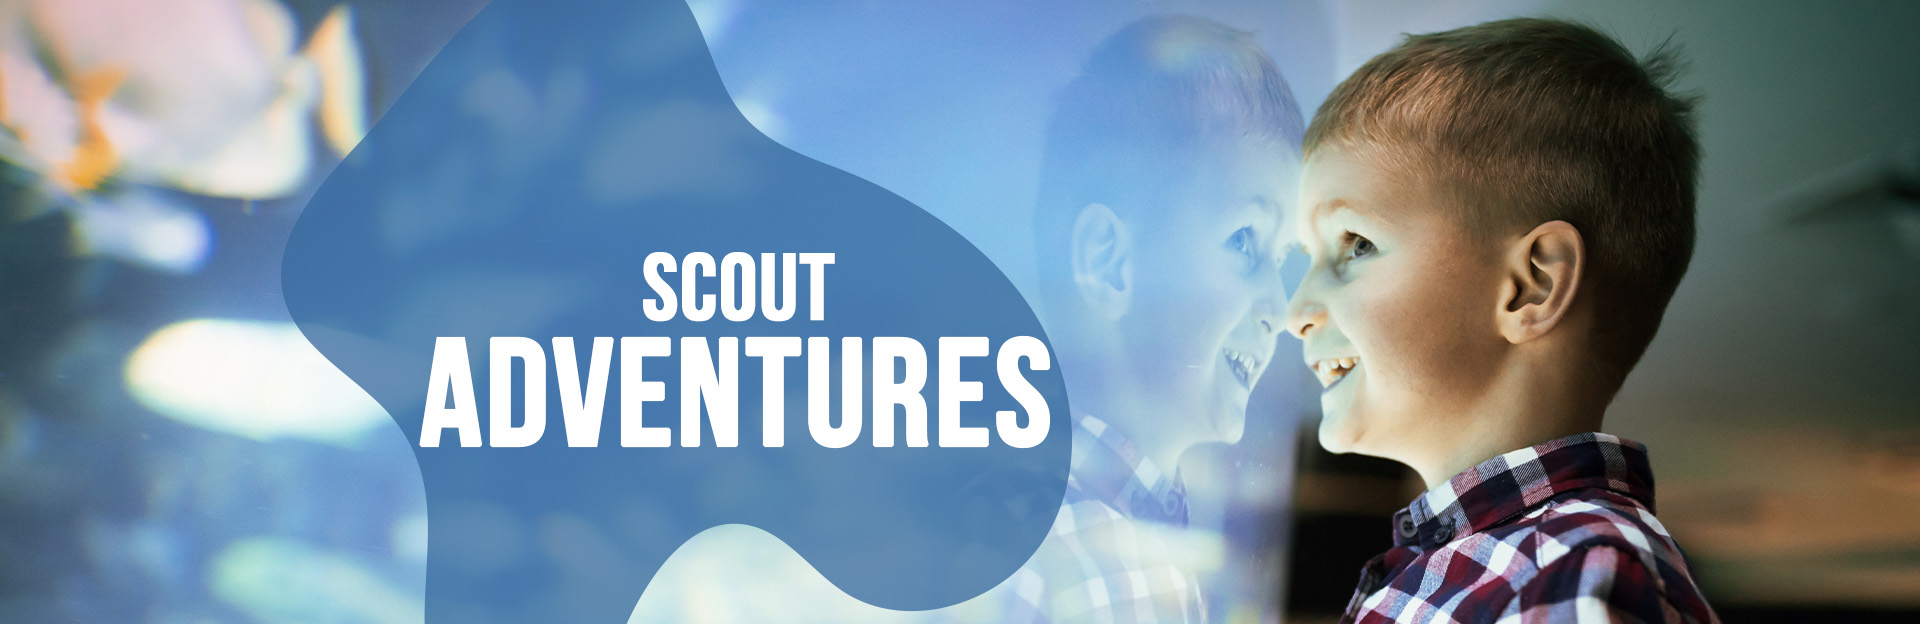 Header image of Scouts page